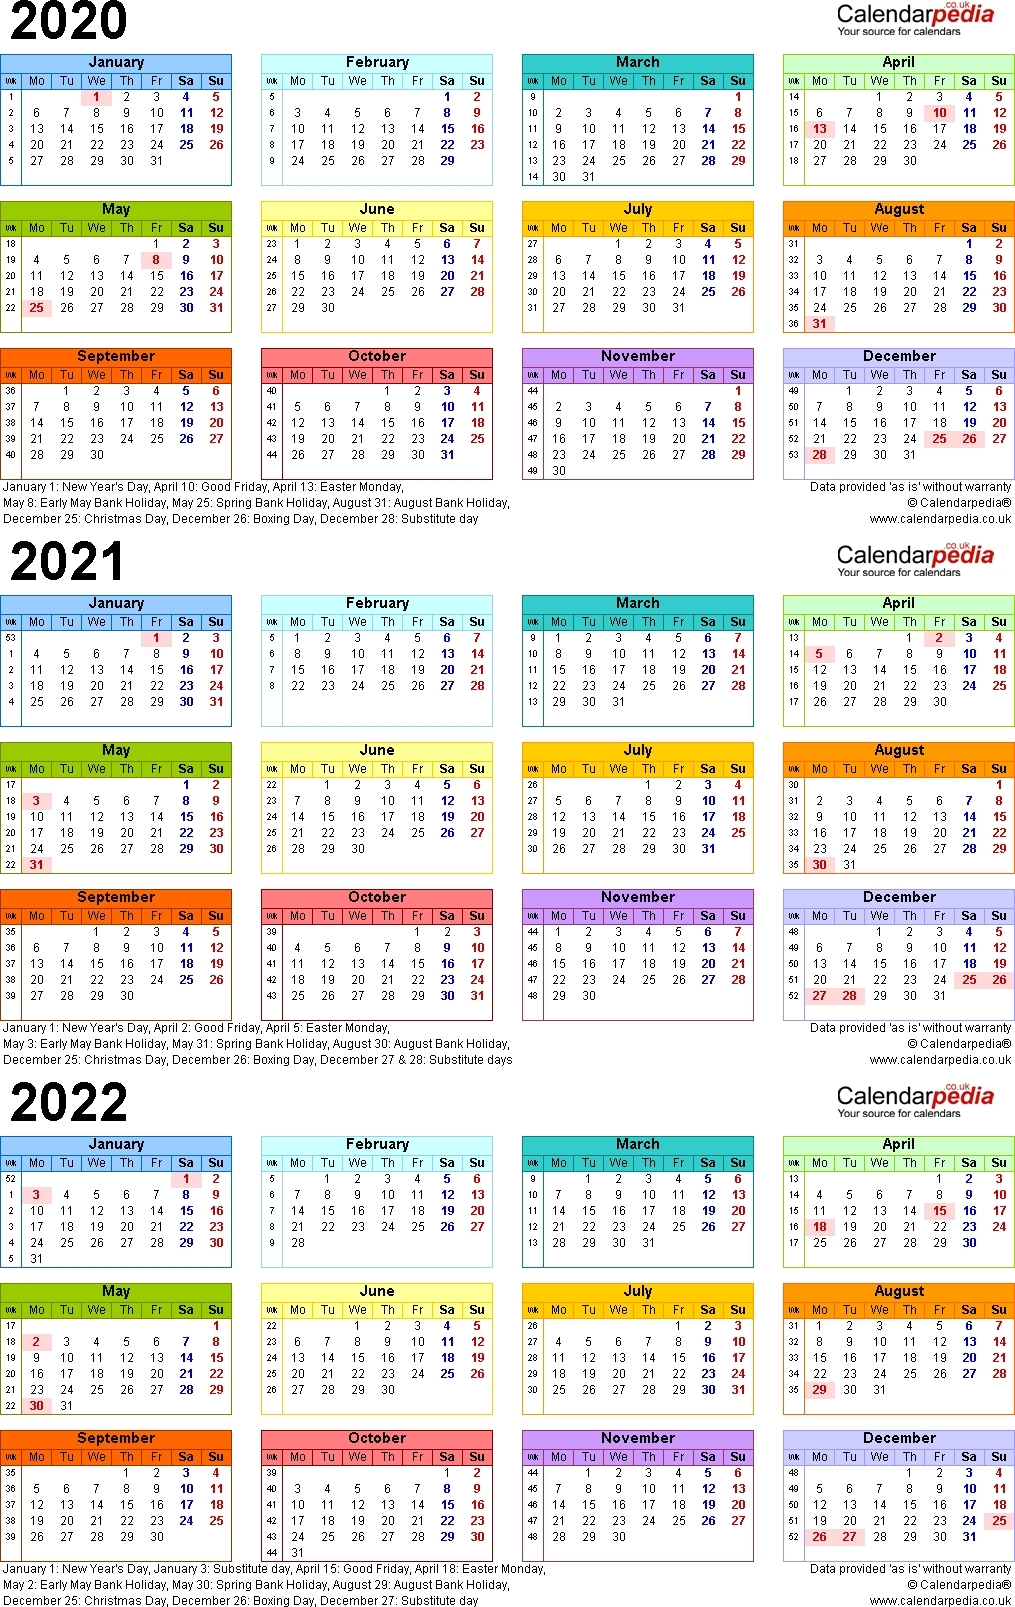 3 Year Calendar 2020 2021 2022 | Us Calendar Example